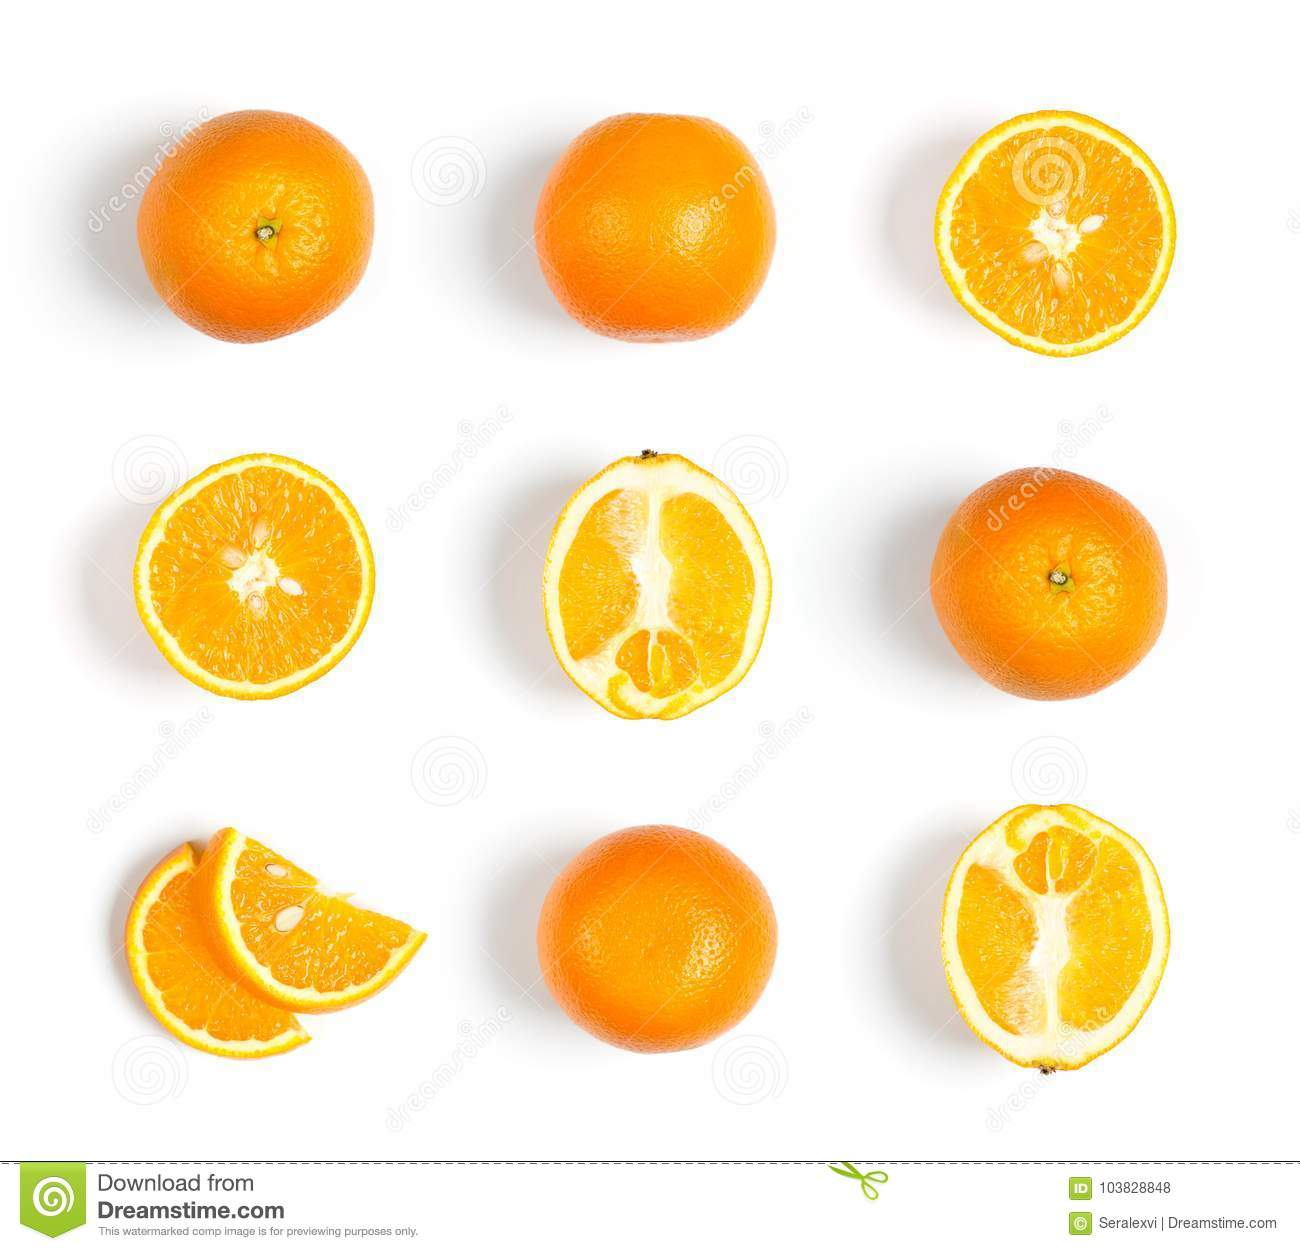 Collection of oranges on white background